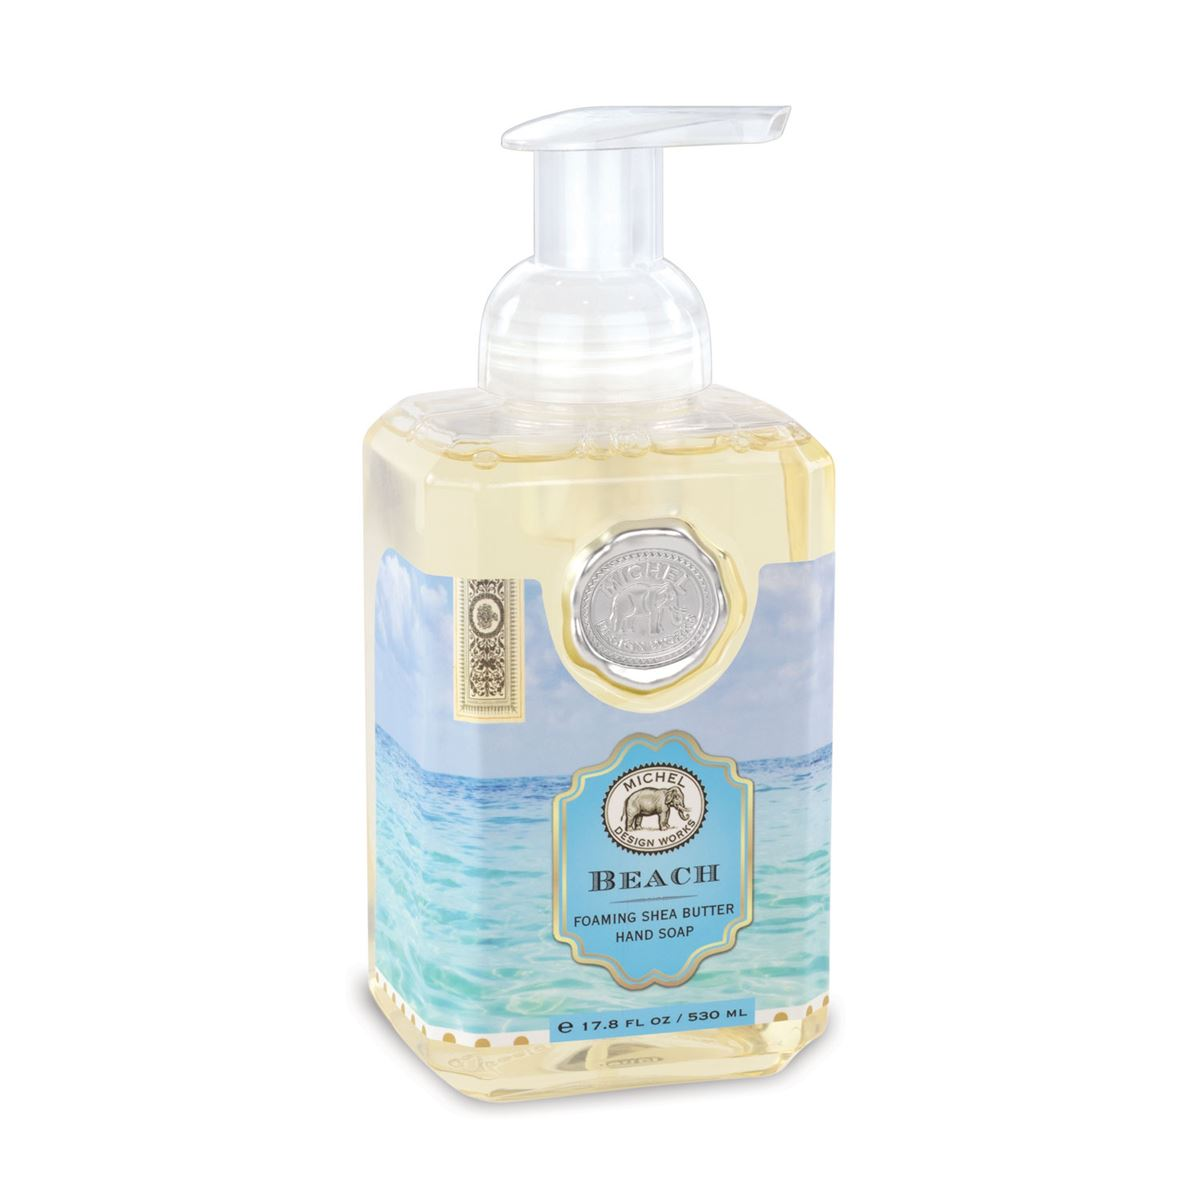 The refreshing Beach scent features compelling marine notes with hints of bergamot, amber and watermelon. This generously sized foaming hand soap contains luxurious shea butter and aloe vera for gentle cleansing and moisturizing.  17.8 fl. oz. / 530 ml liquid